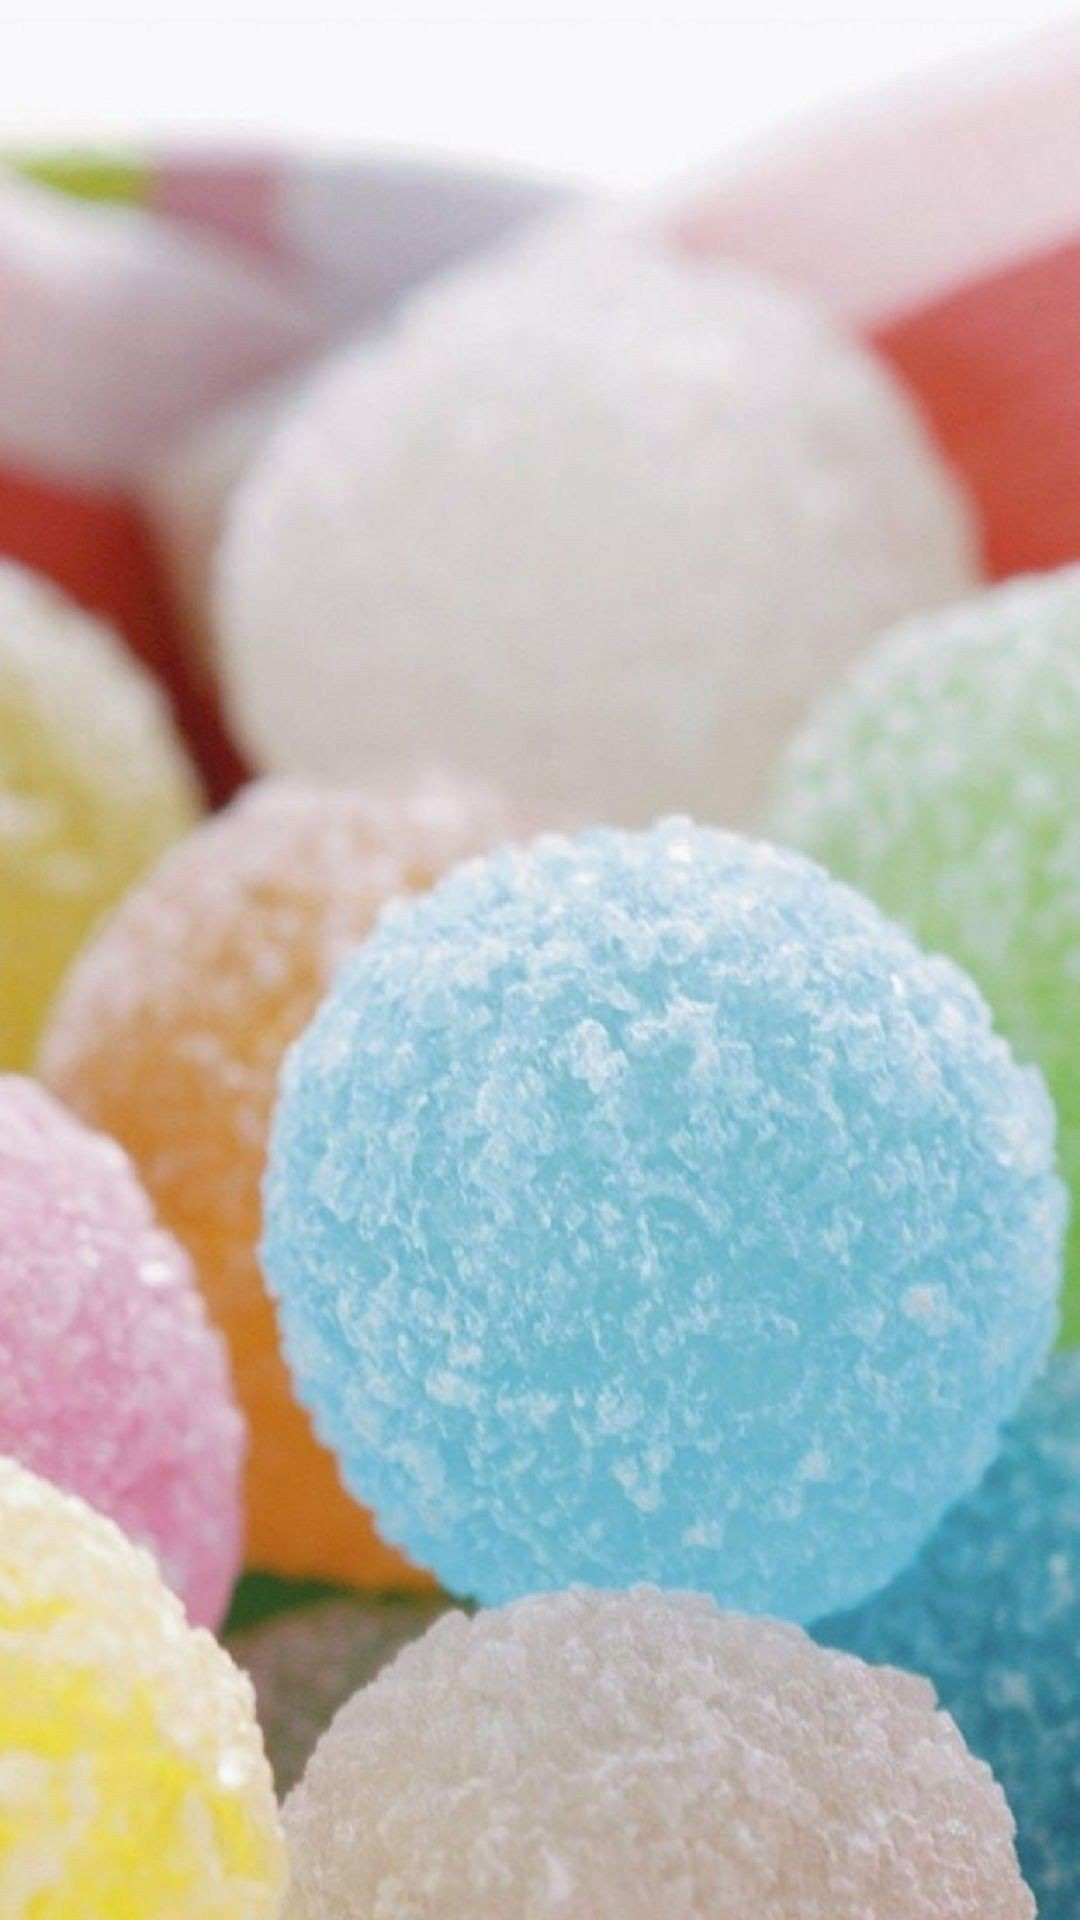 Res: 1080x1920, Pastel Candy, Colorful Candy, Wallpaper Iphone Cute, Food Wallpaper,  Wallpaper For Your